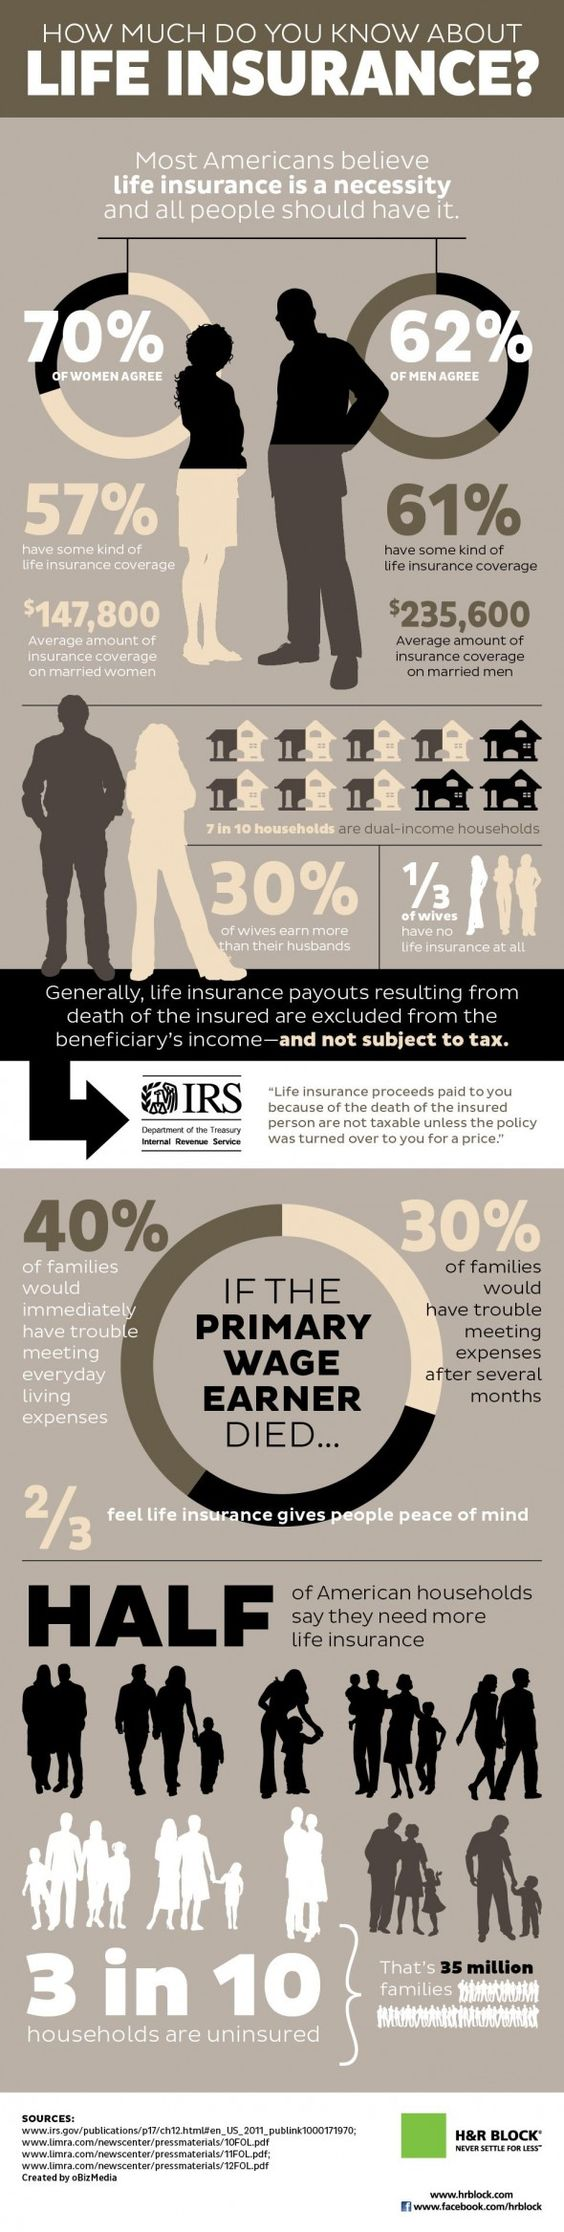 #INFOGRAPHIC: HOW MUCH DO YOU KNOW ABOUT LIFE INSURANCE?